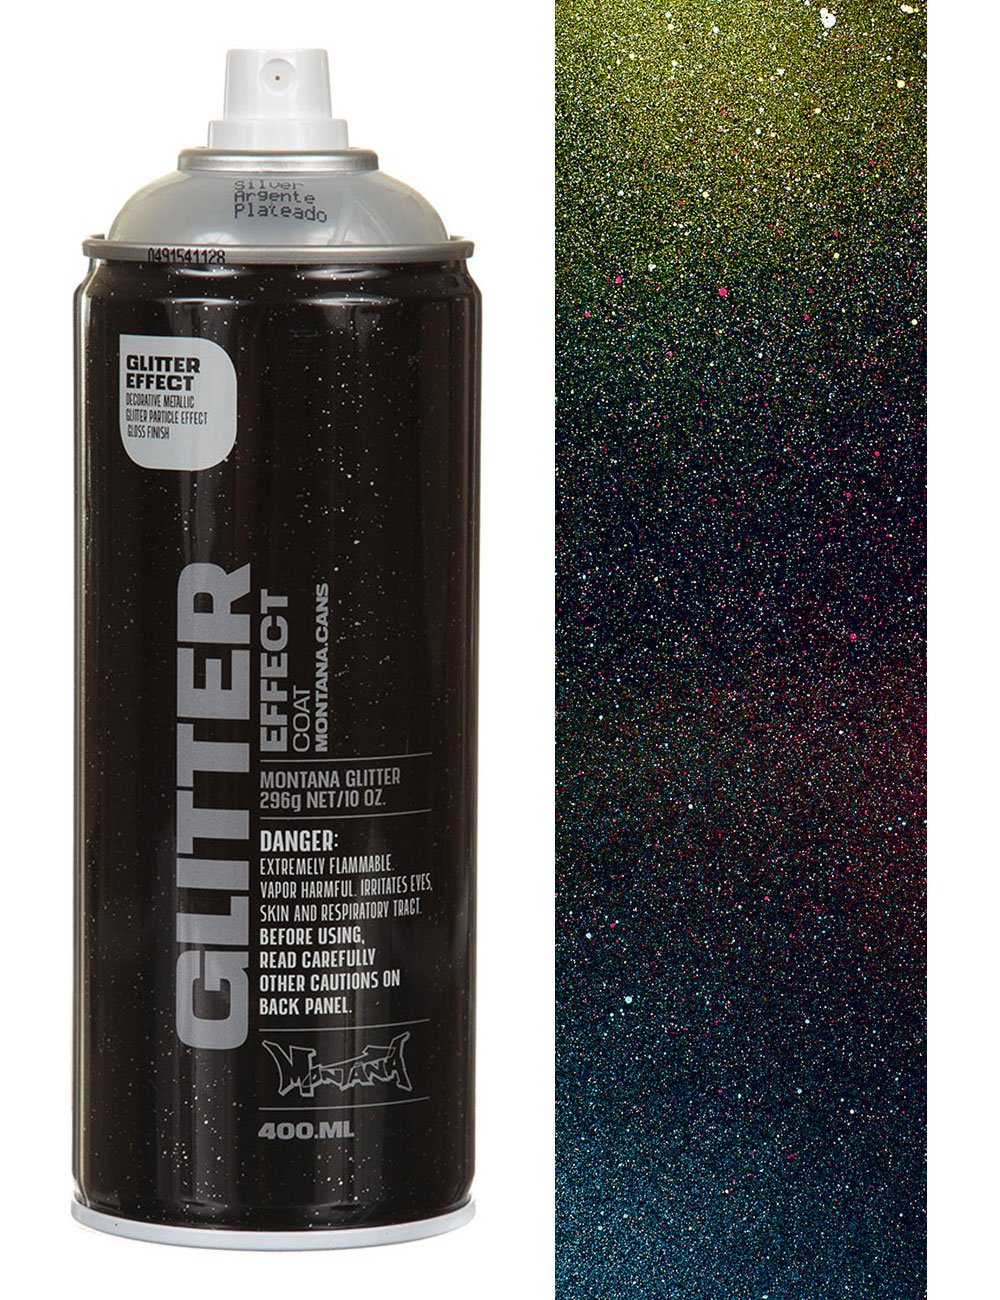 Montana gold glitter effect spray paint 400ml spray paint supplies from iconsume uk Spray paint supplies